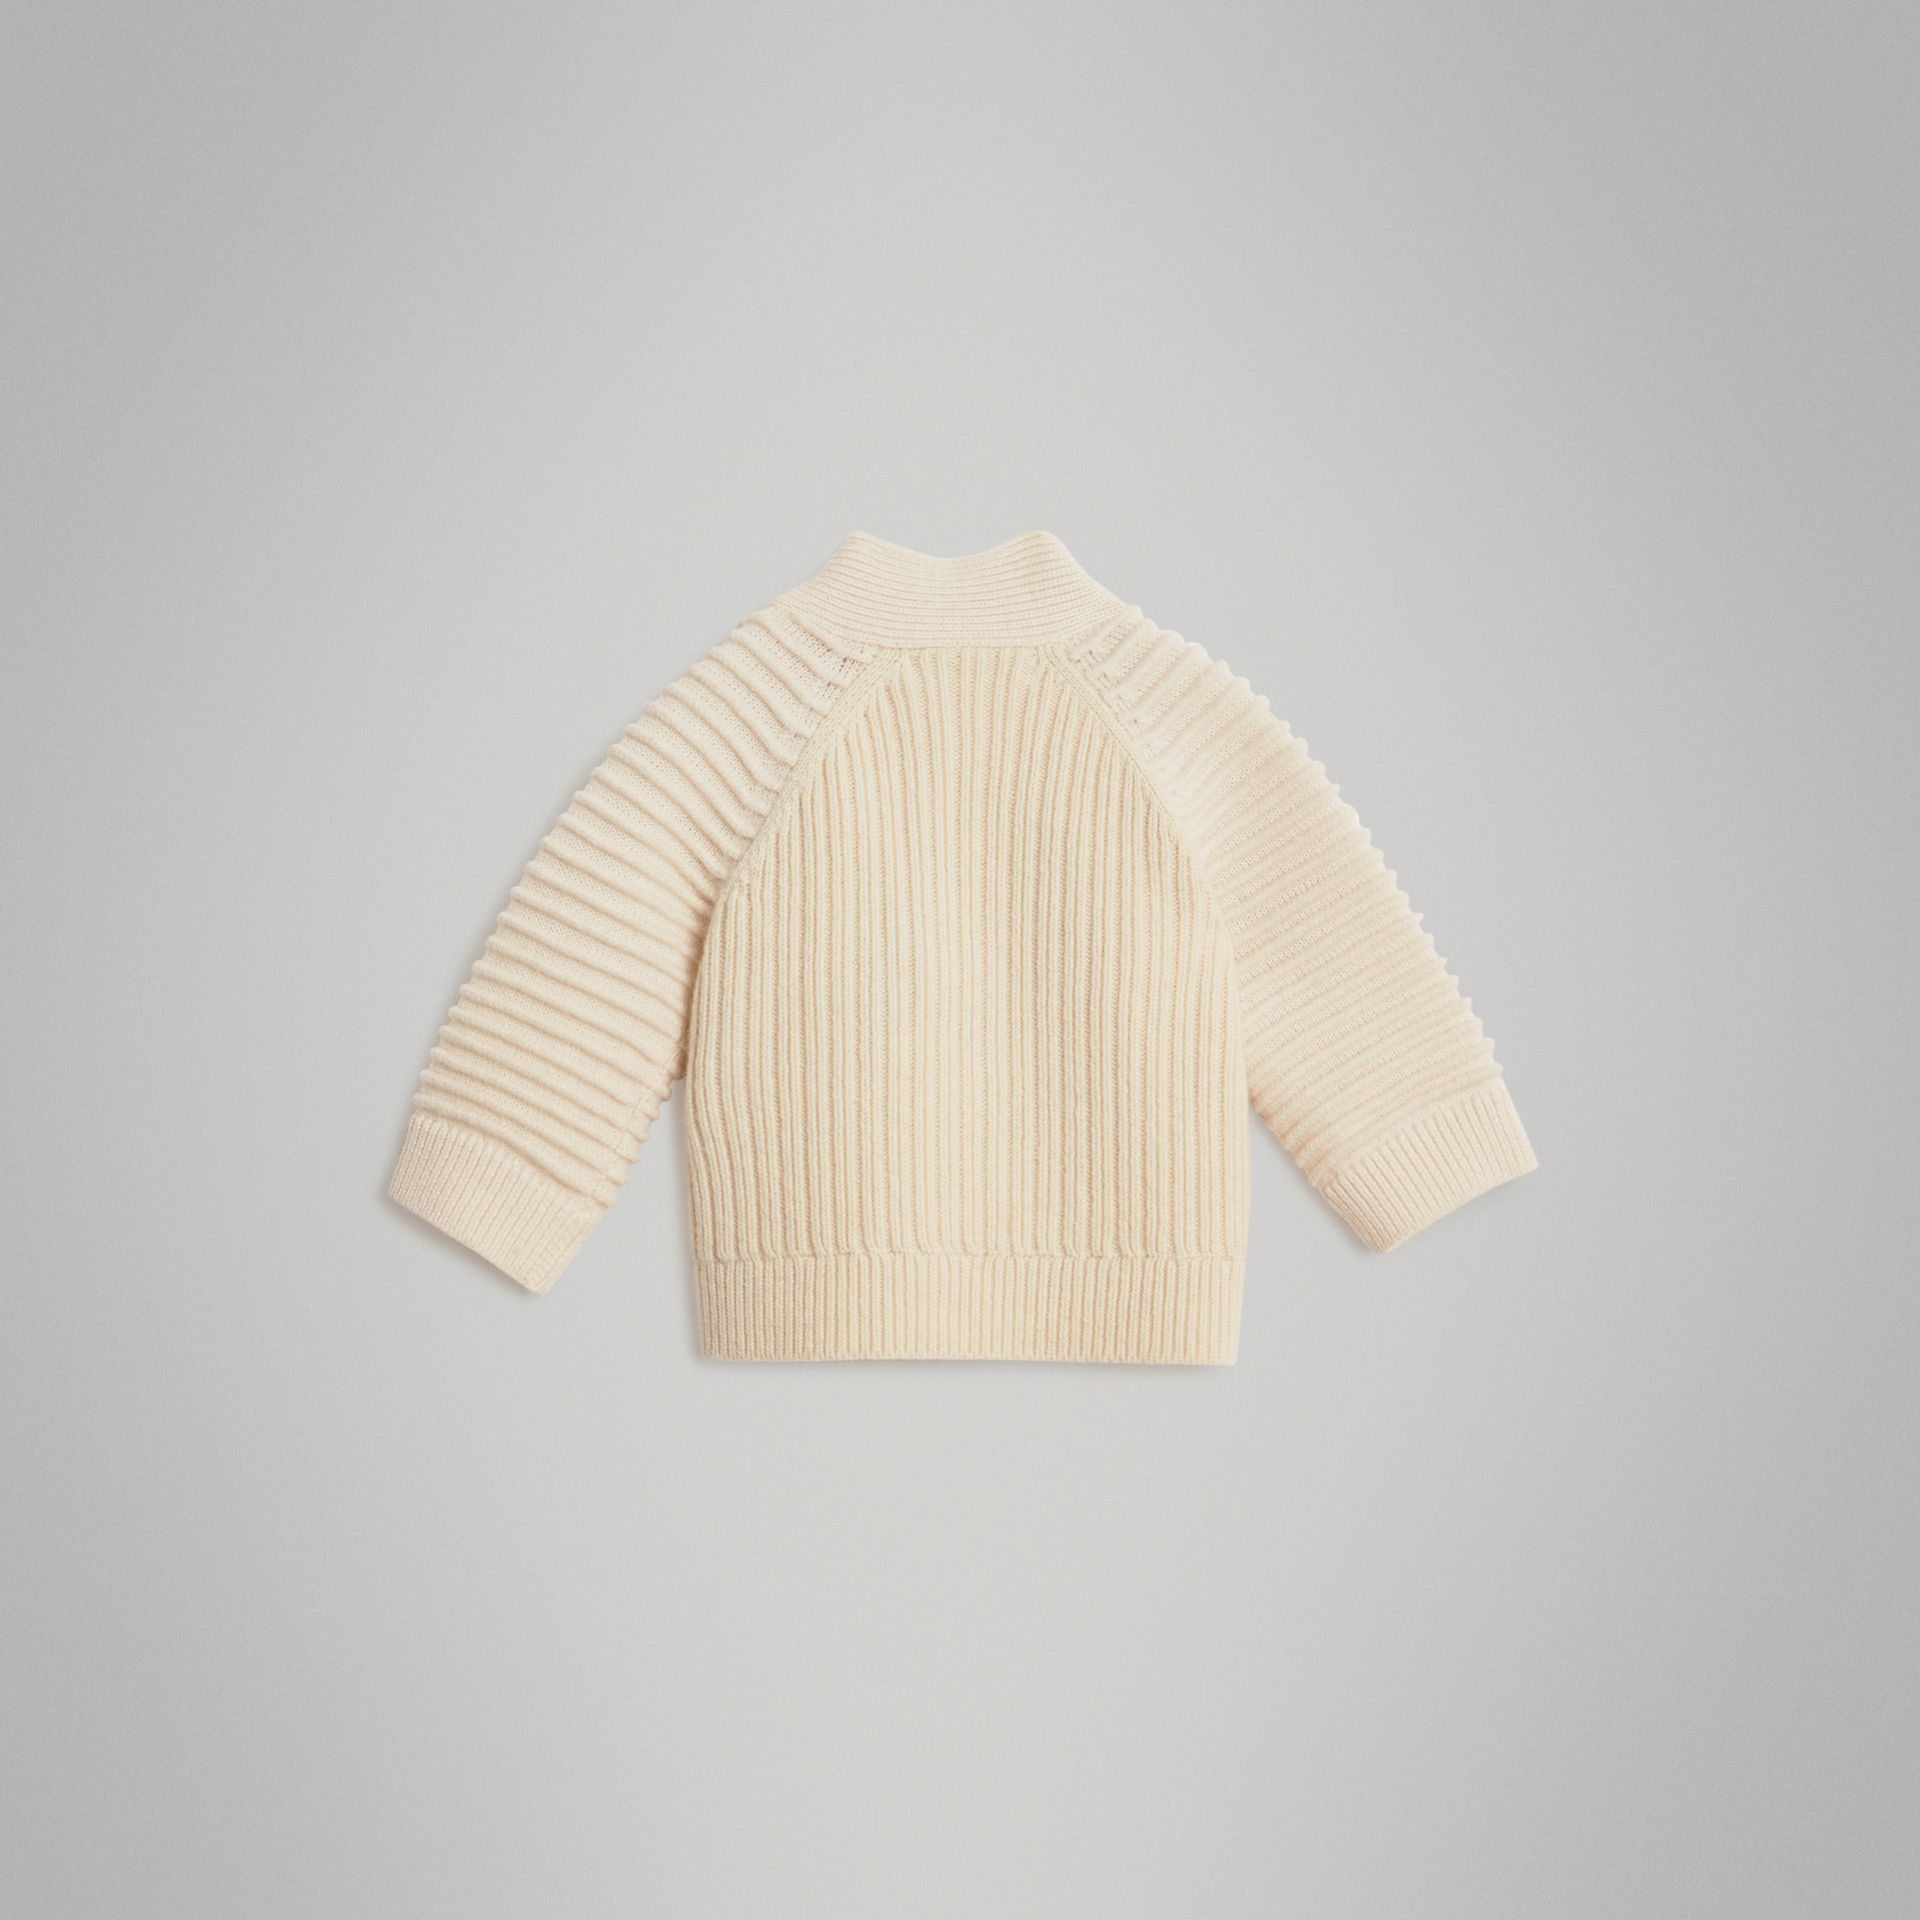 Rib Knit Wool Cashmere Cardigan in Ivory - Children | Burberry United Kingdom - gallery image 3